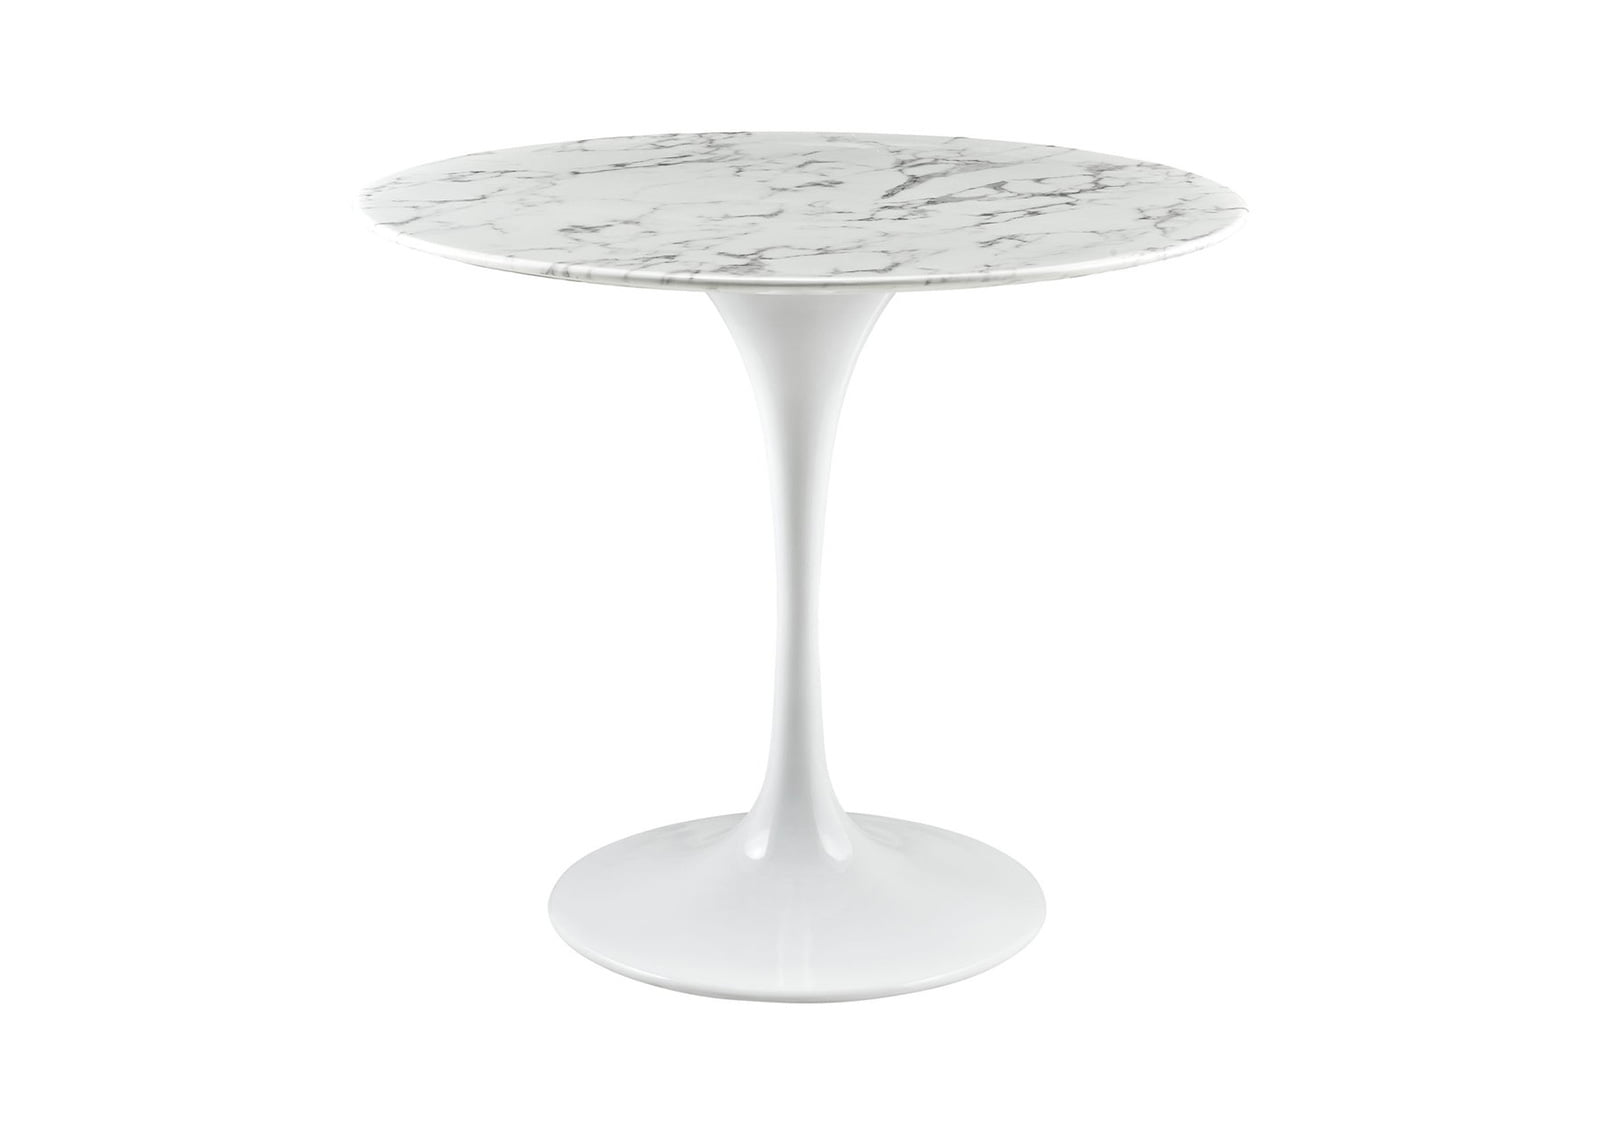 Tulip Table Replica | Eero Saarinen